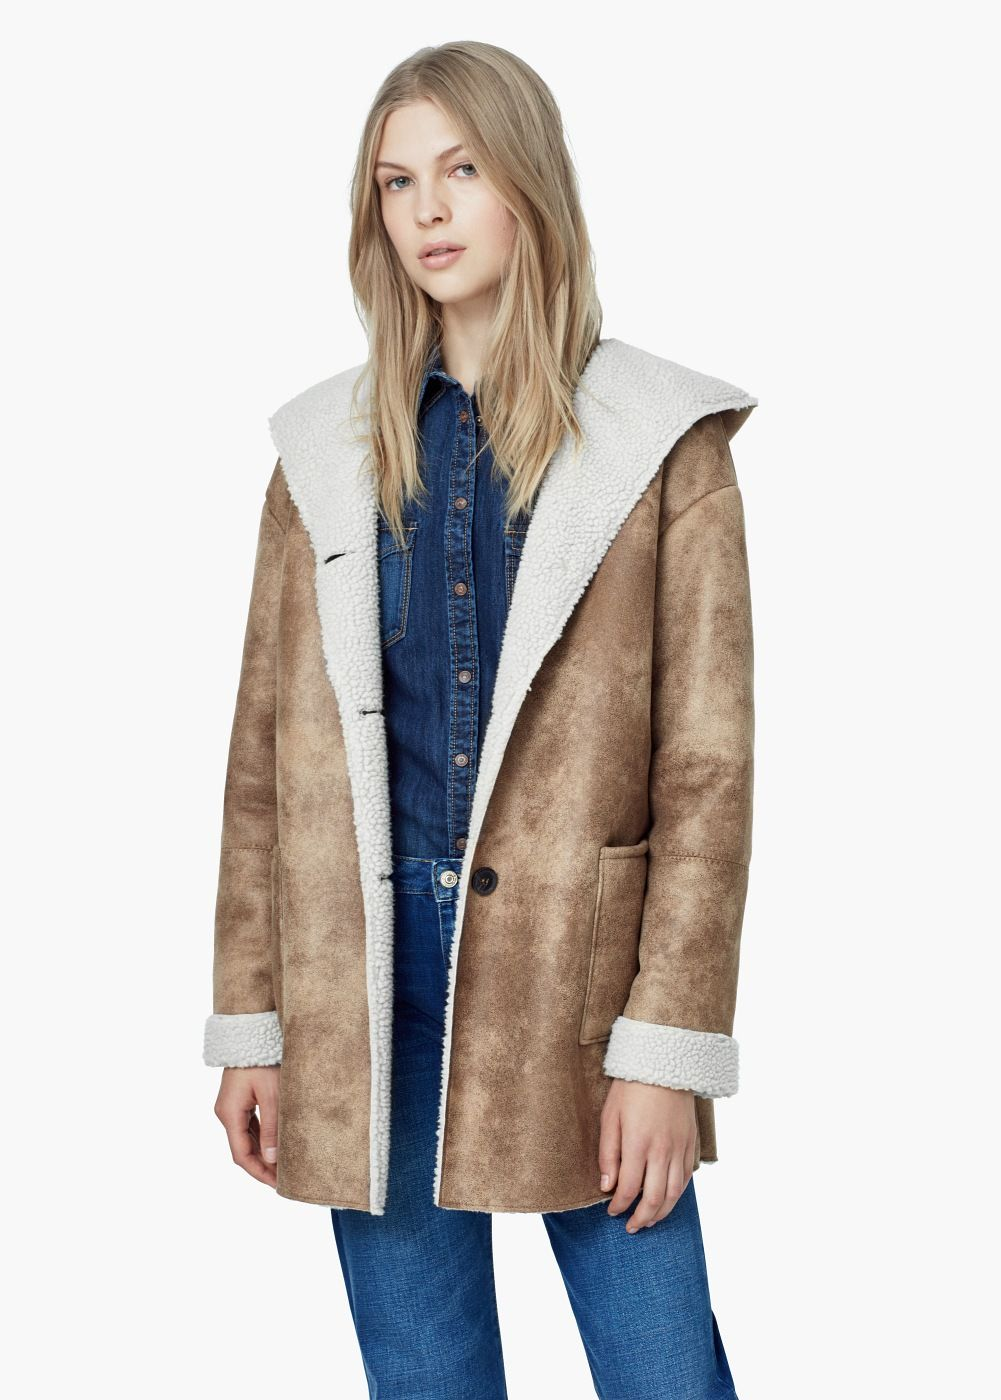 Faux shearling coat | Faux shearling coat and Shearling coat